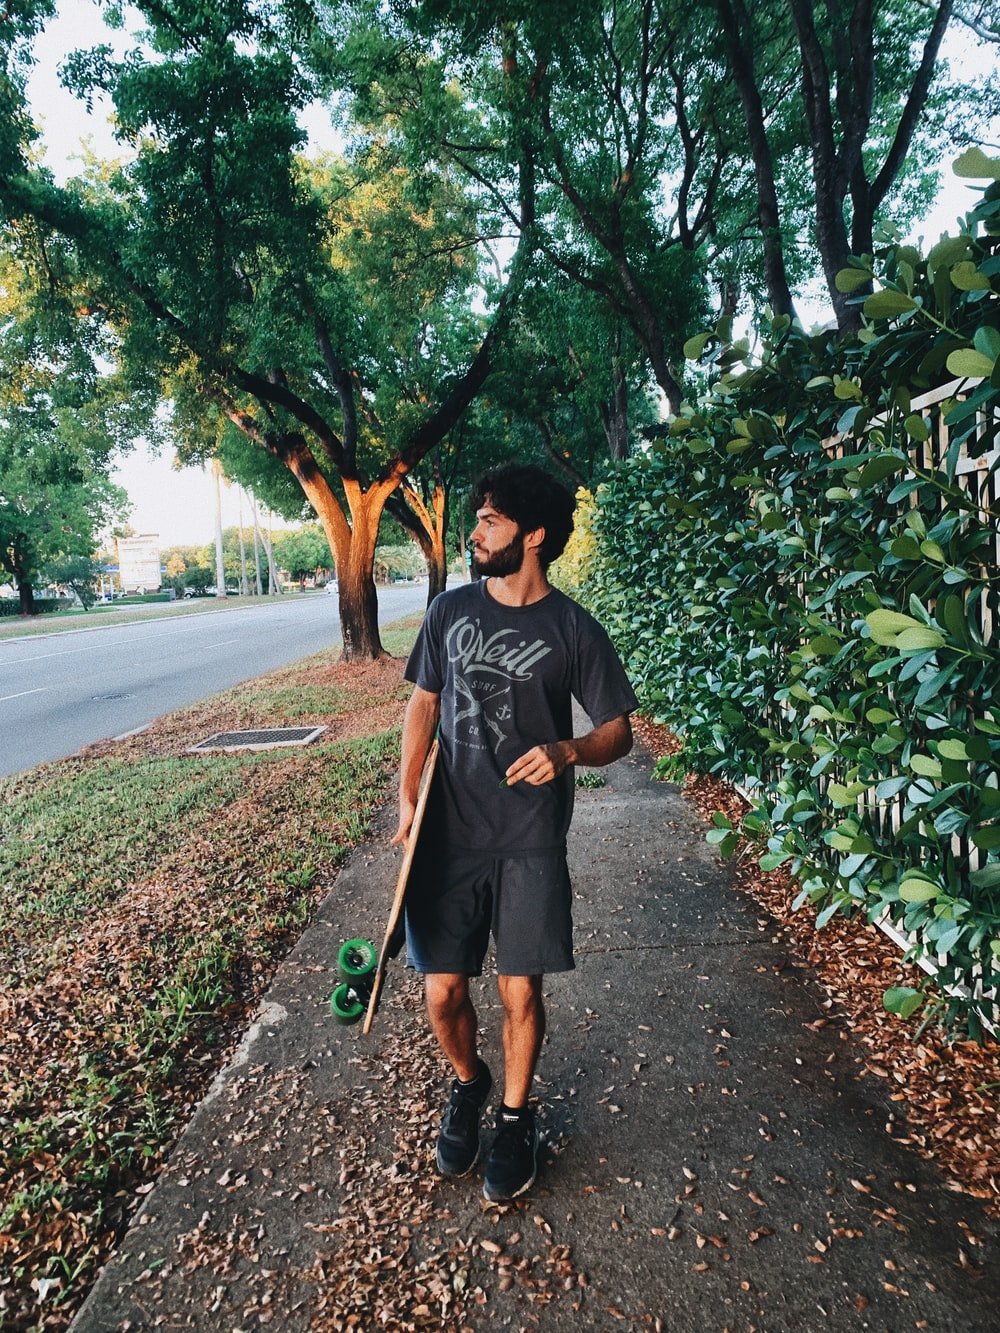 man in black crew neck t-shirt standing on road during daytime